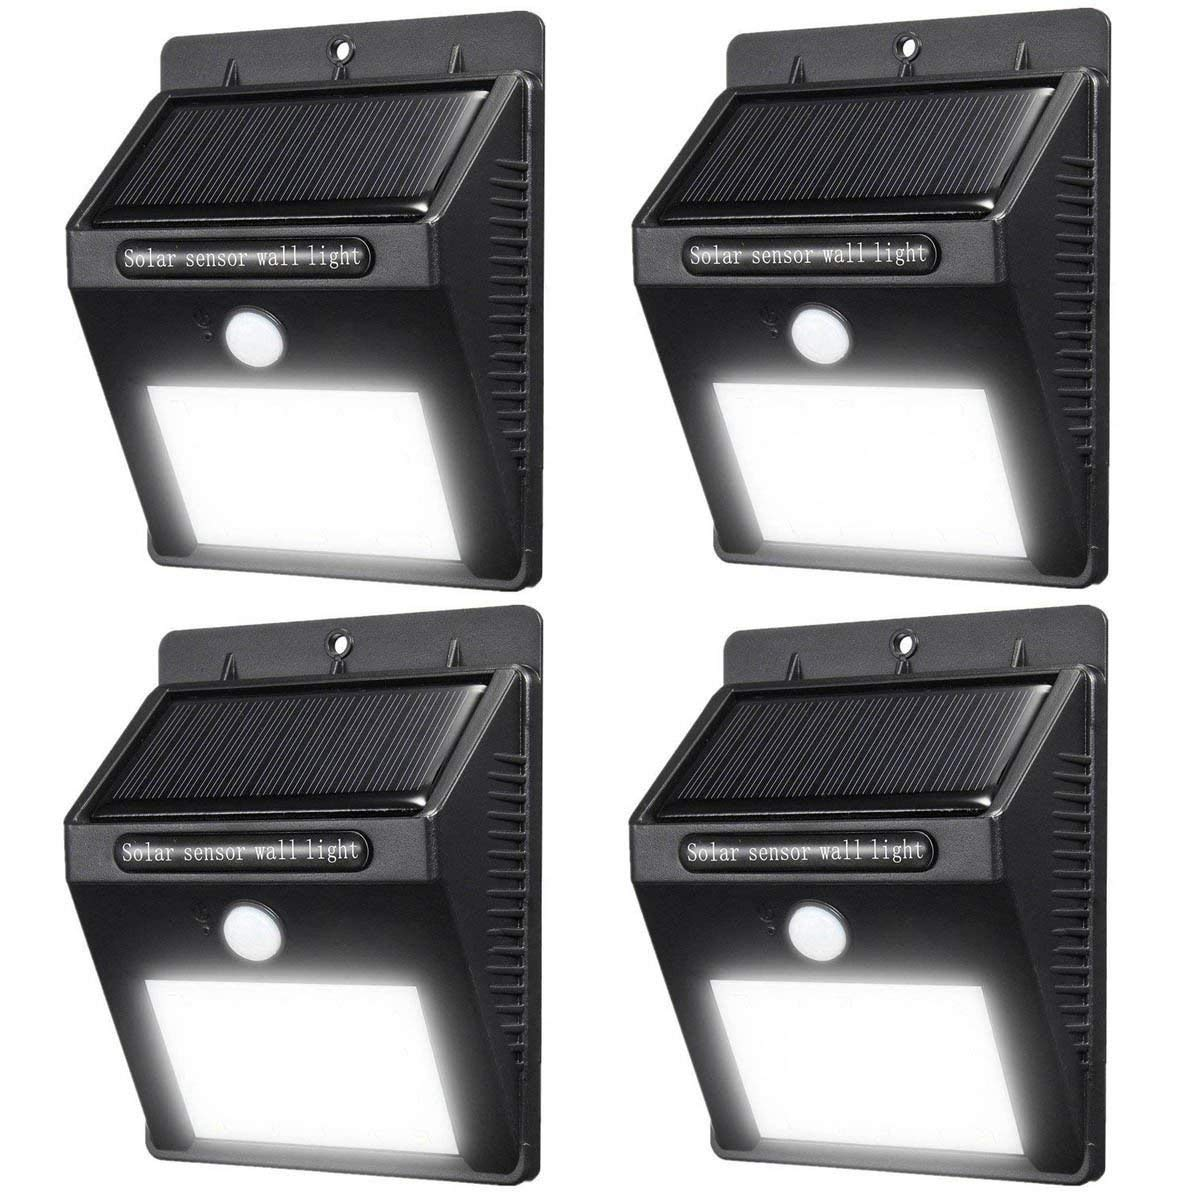 Motion Sensor Solar Lights Outdoor Wall Light 8 LED Waterproof Wireless Security Night Light Lamp For Outdoor Closet Light Porch Light Yard Garden Step Stair Garage Garden Deck Light, 4 pack